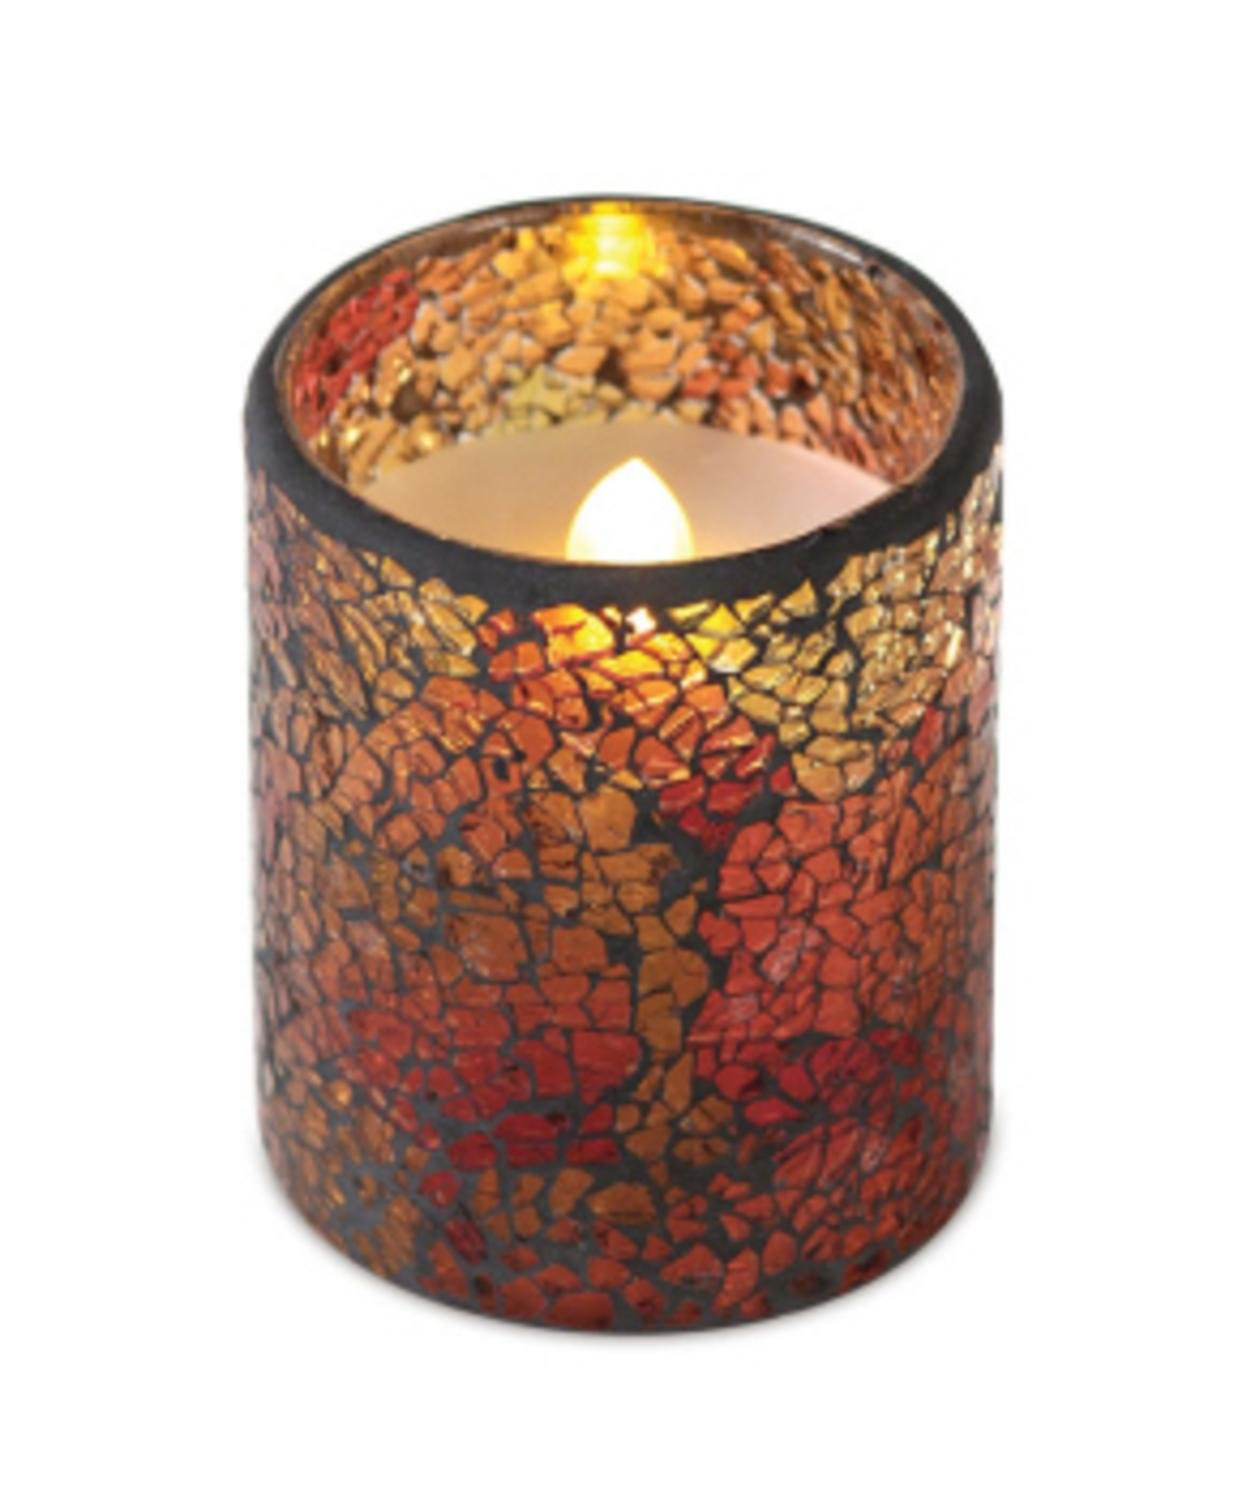 6 Red/Gold/Orange Flameless Wax LED Pillar Candles Glass Mosiac Holders 3'' x 4'' by CC Home Furnishings